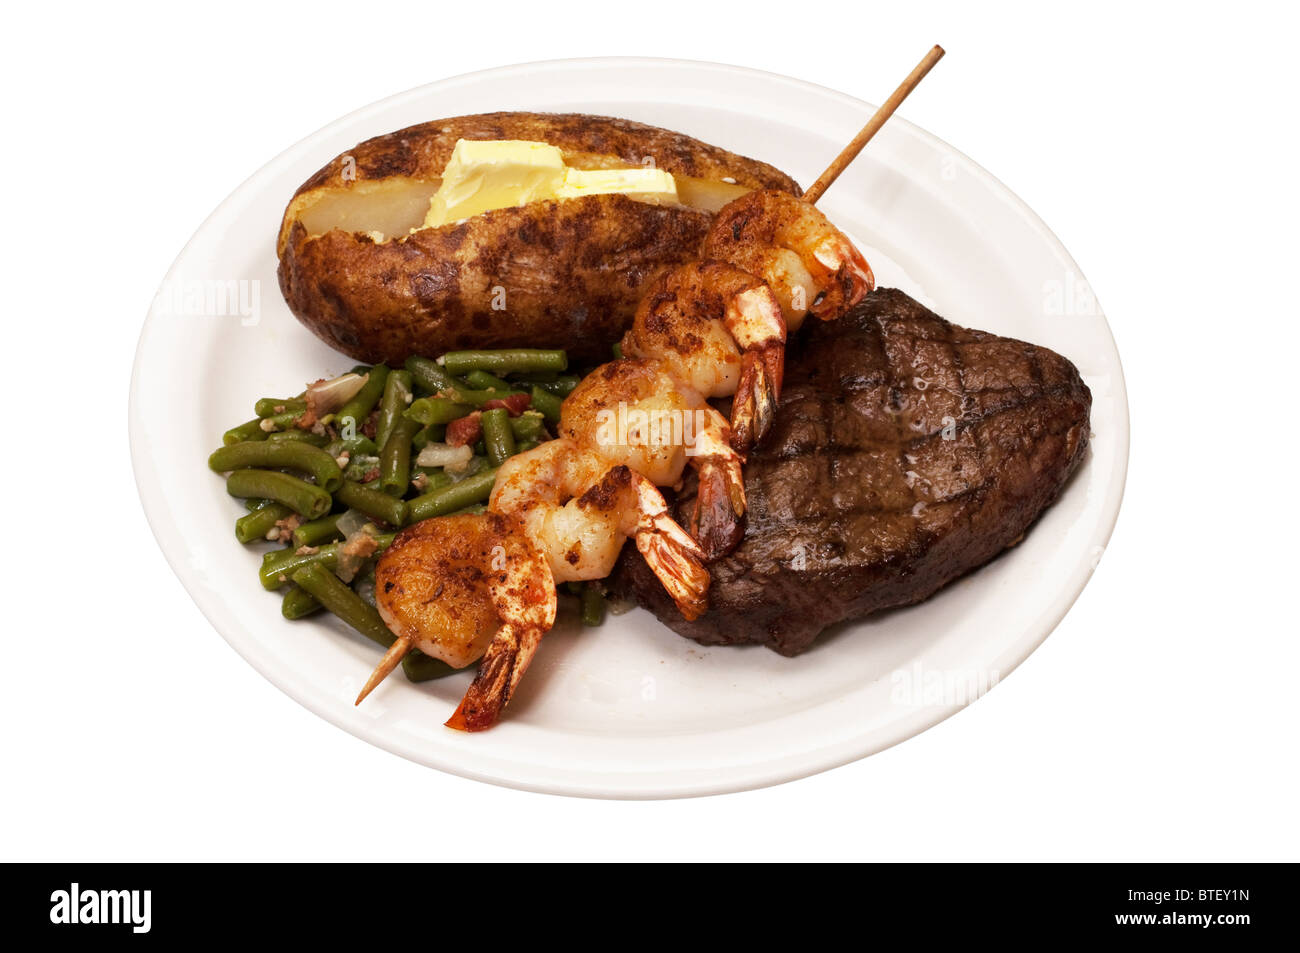 Turf N Surf >> Sirloin steak with baked potato, green beans and shrimp on skewer Stock Photo, Royalty Free ...